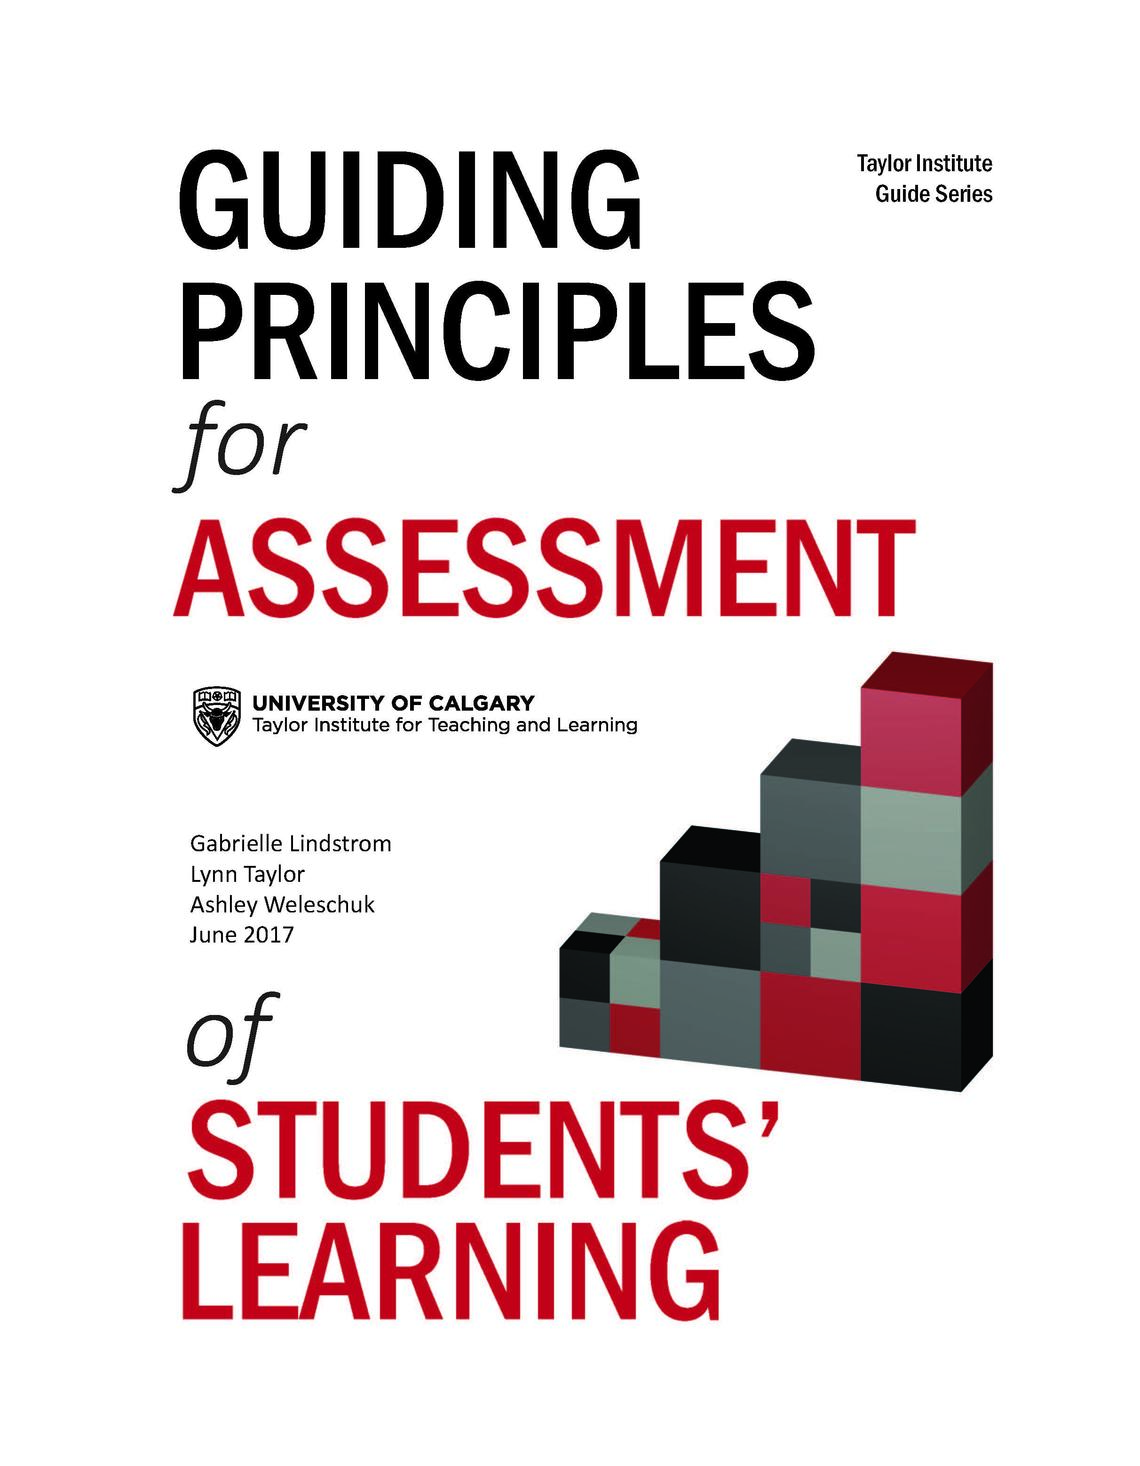 Guiding Principles for Assessment of Students' Learning